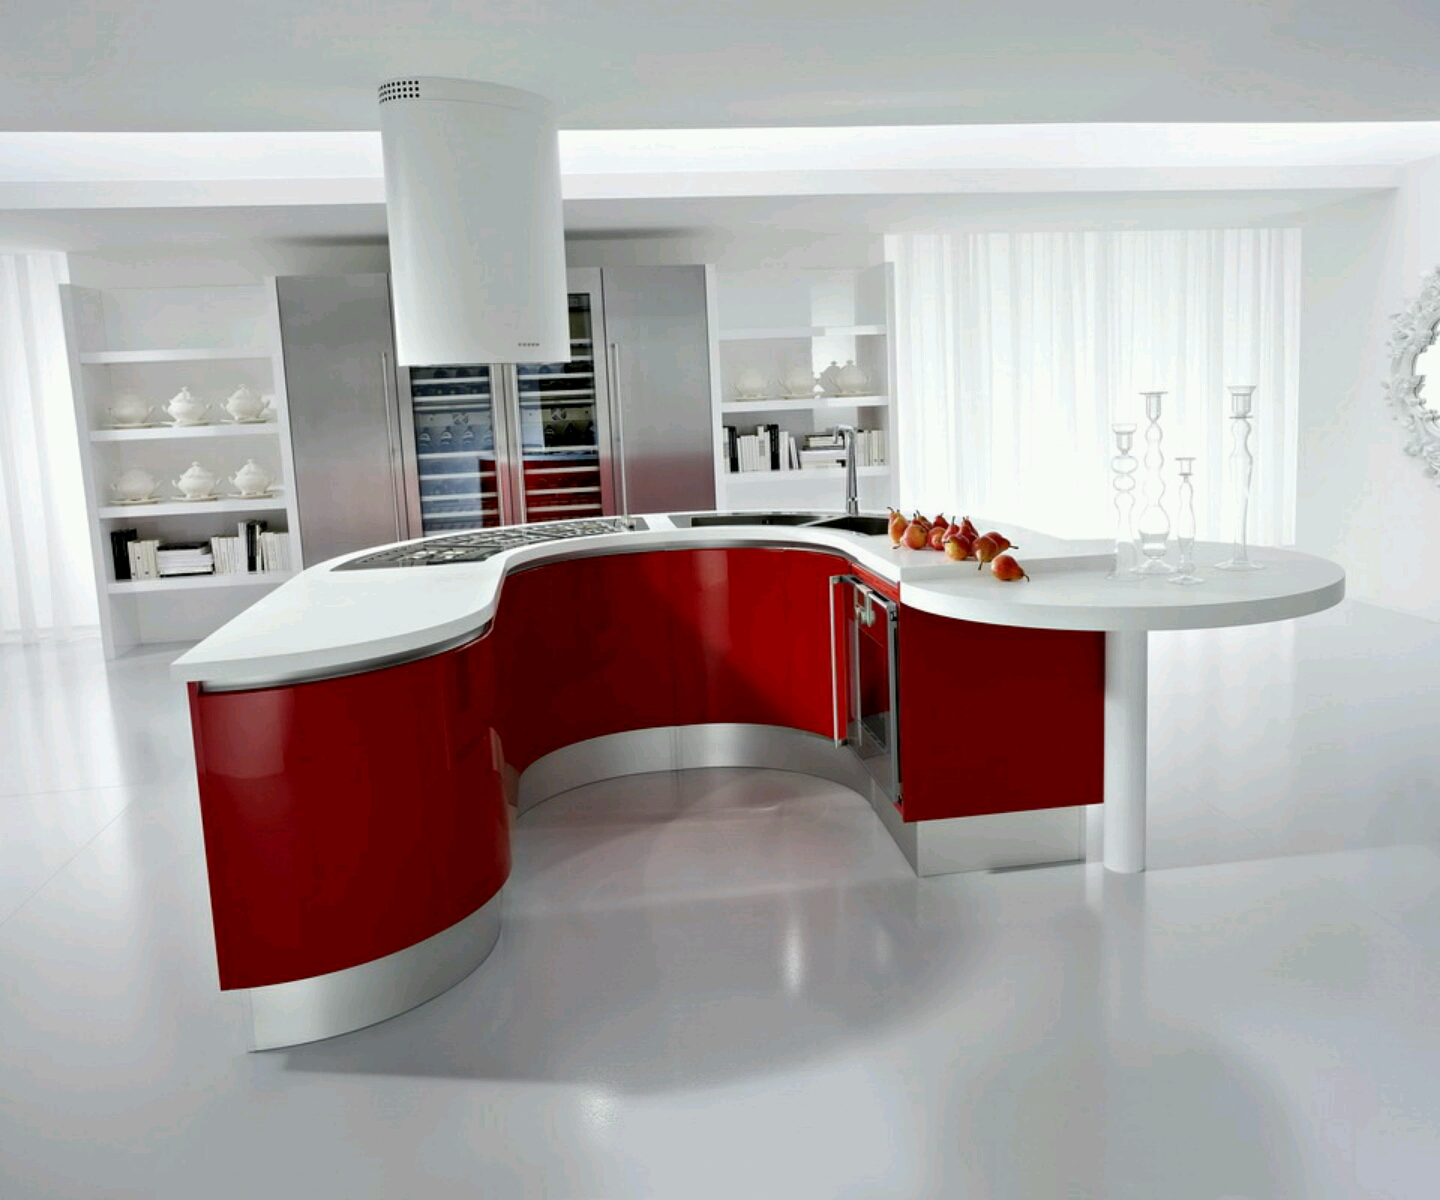 Modern kitchen cabinets designs ideas furniture gallery for Modern kitchen remodel